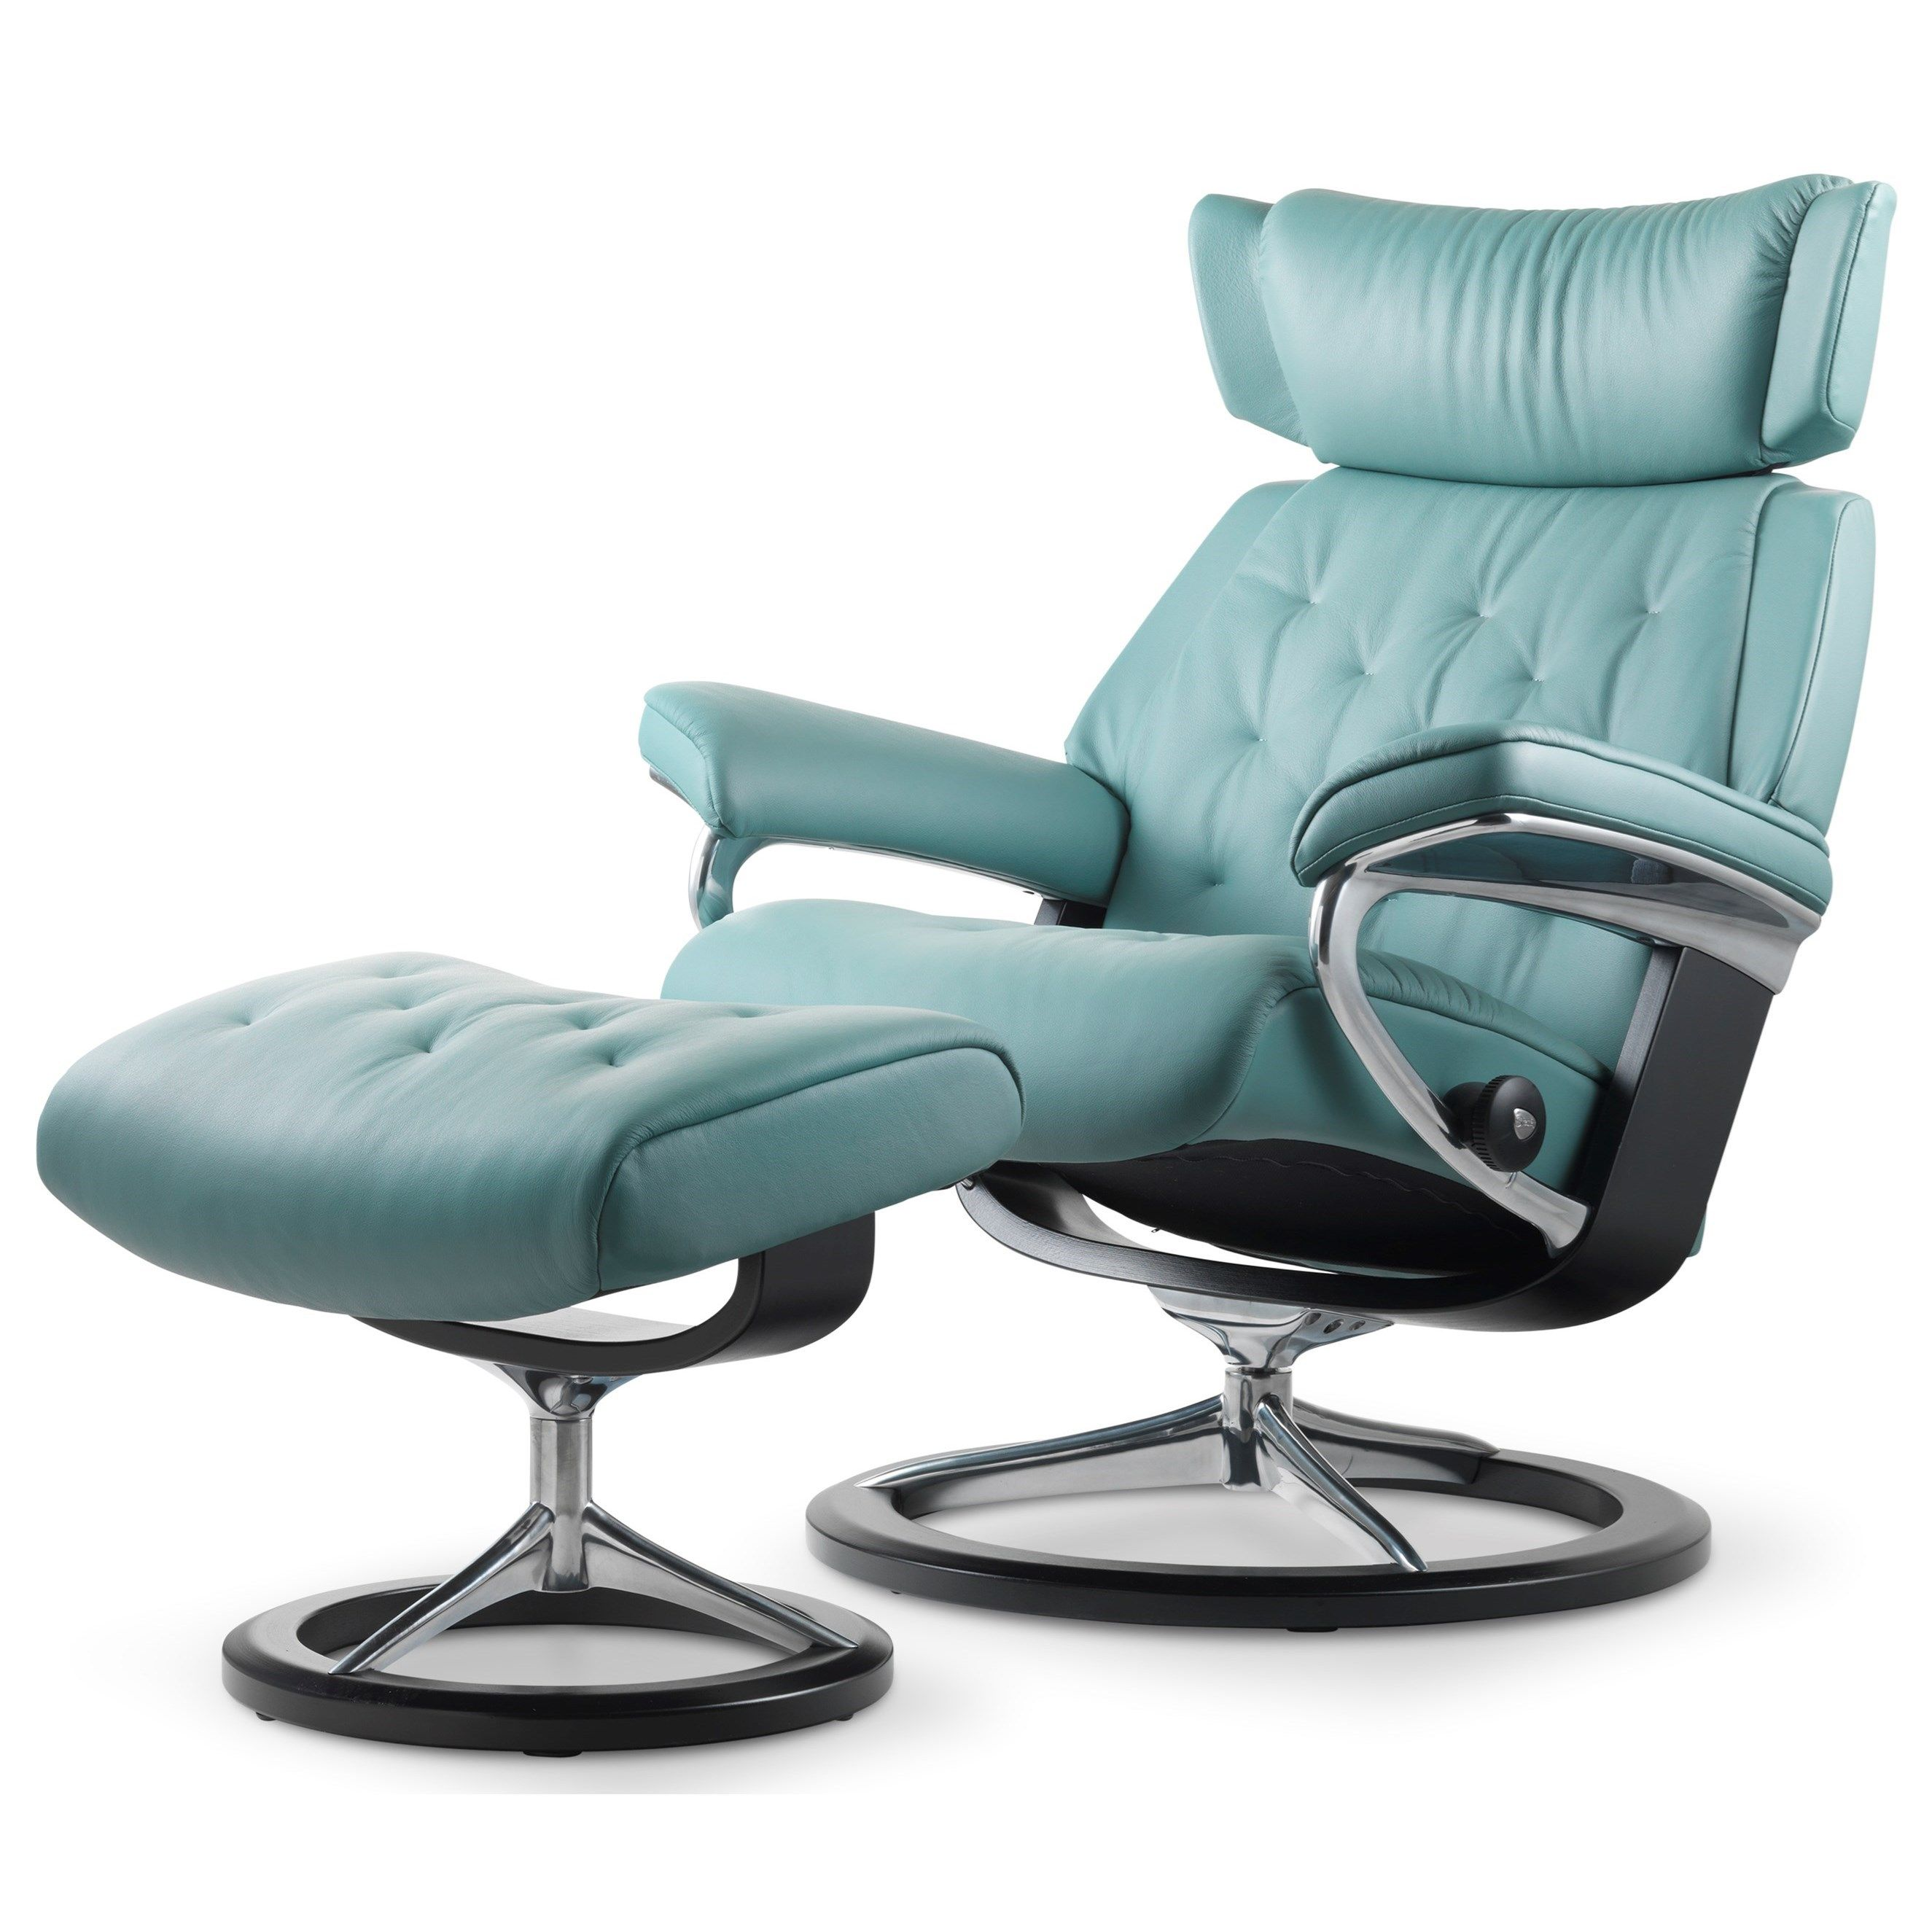 Stressless Skyline Small Signature Chair by Stressless by Ekornes  sc 1 st  Pinterest & Stressless Skyline Small Signature Chair by Stressless by Ekornes ... islam-shia.org